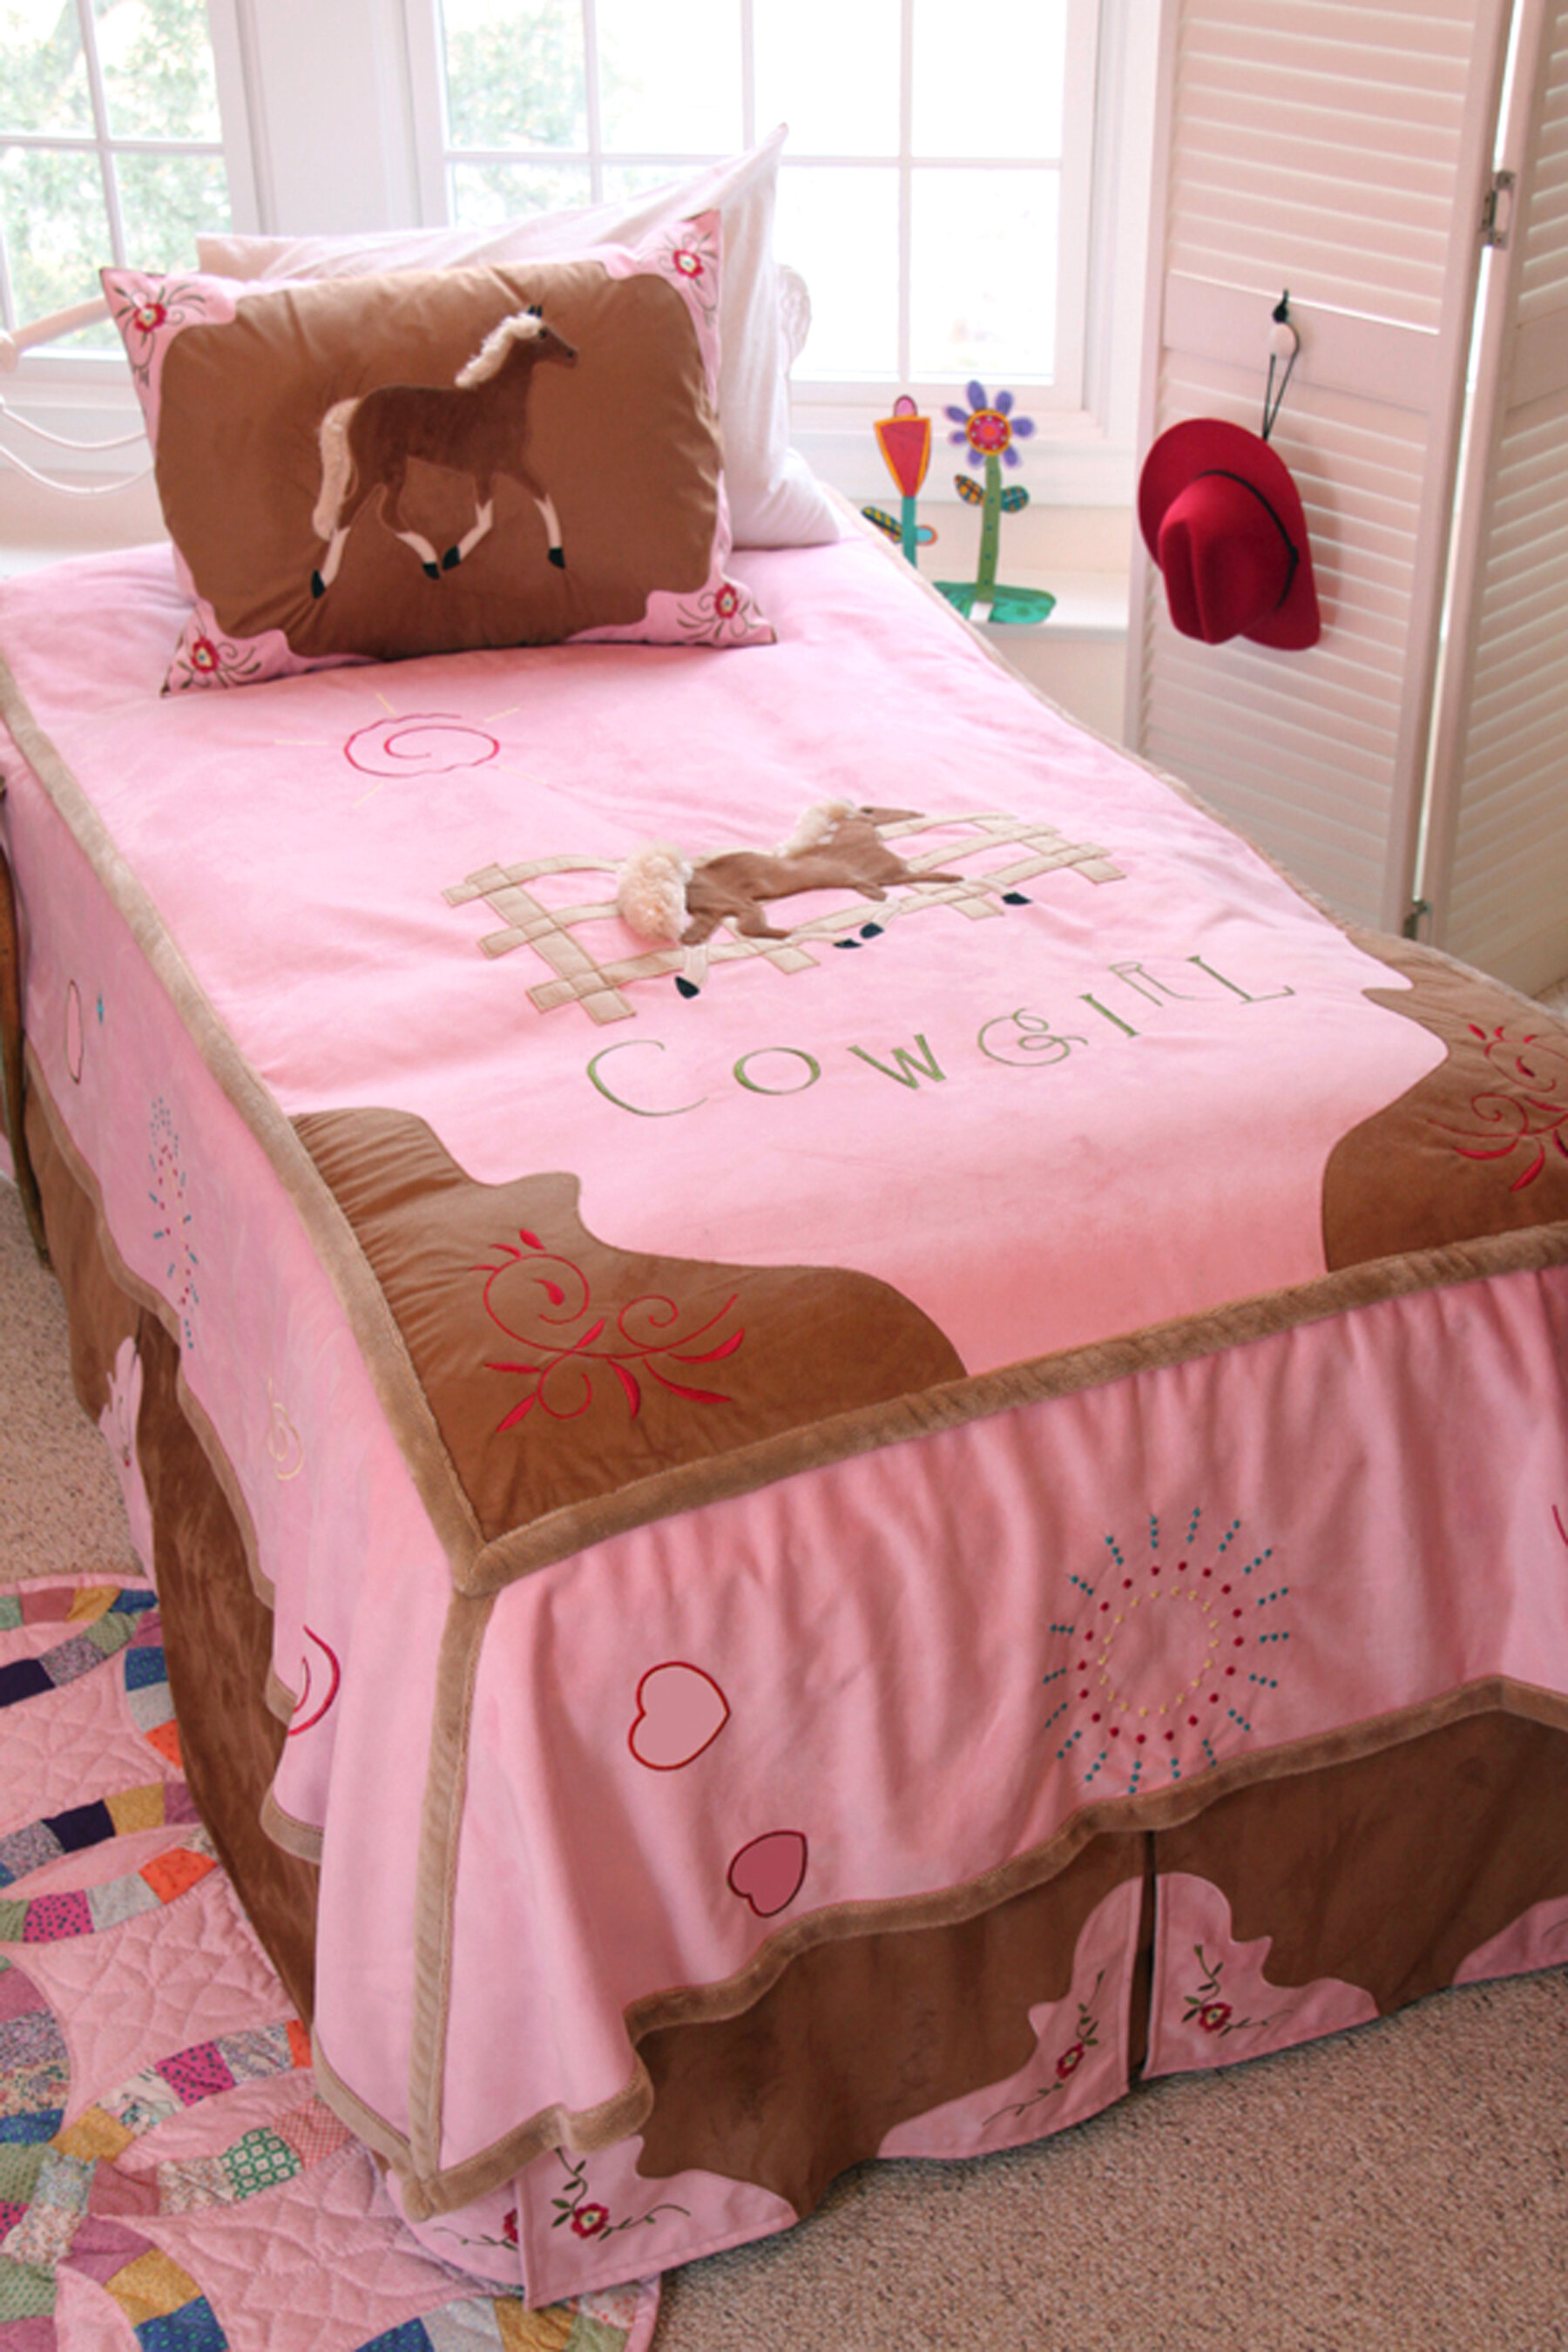 Zoomie Kids Jerald Cowgirl Kids Twin Bed in Bag Collection